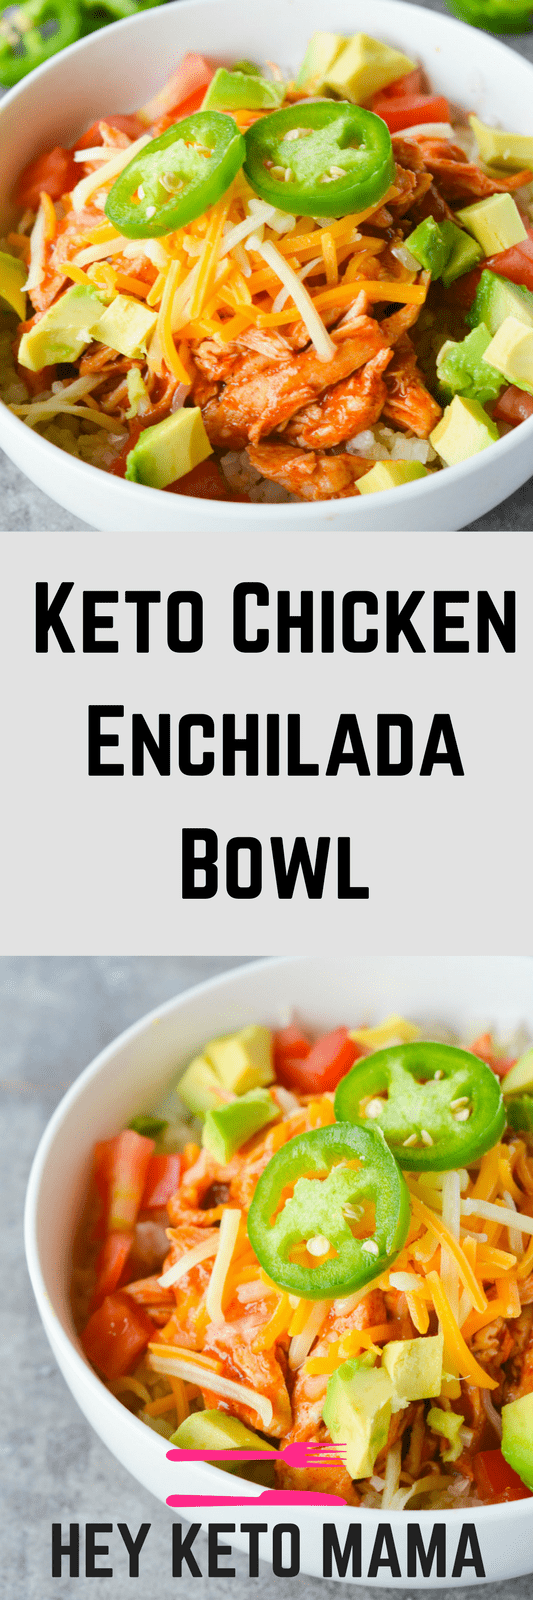 Keto chicken enchilada bowl hey keto mama this keto chicken enchilada bowl is a low carb twist on a mexican favorite its forumfinder Choice Image